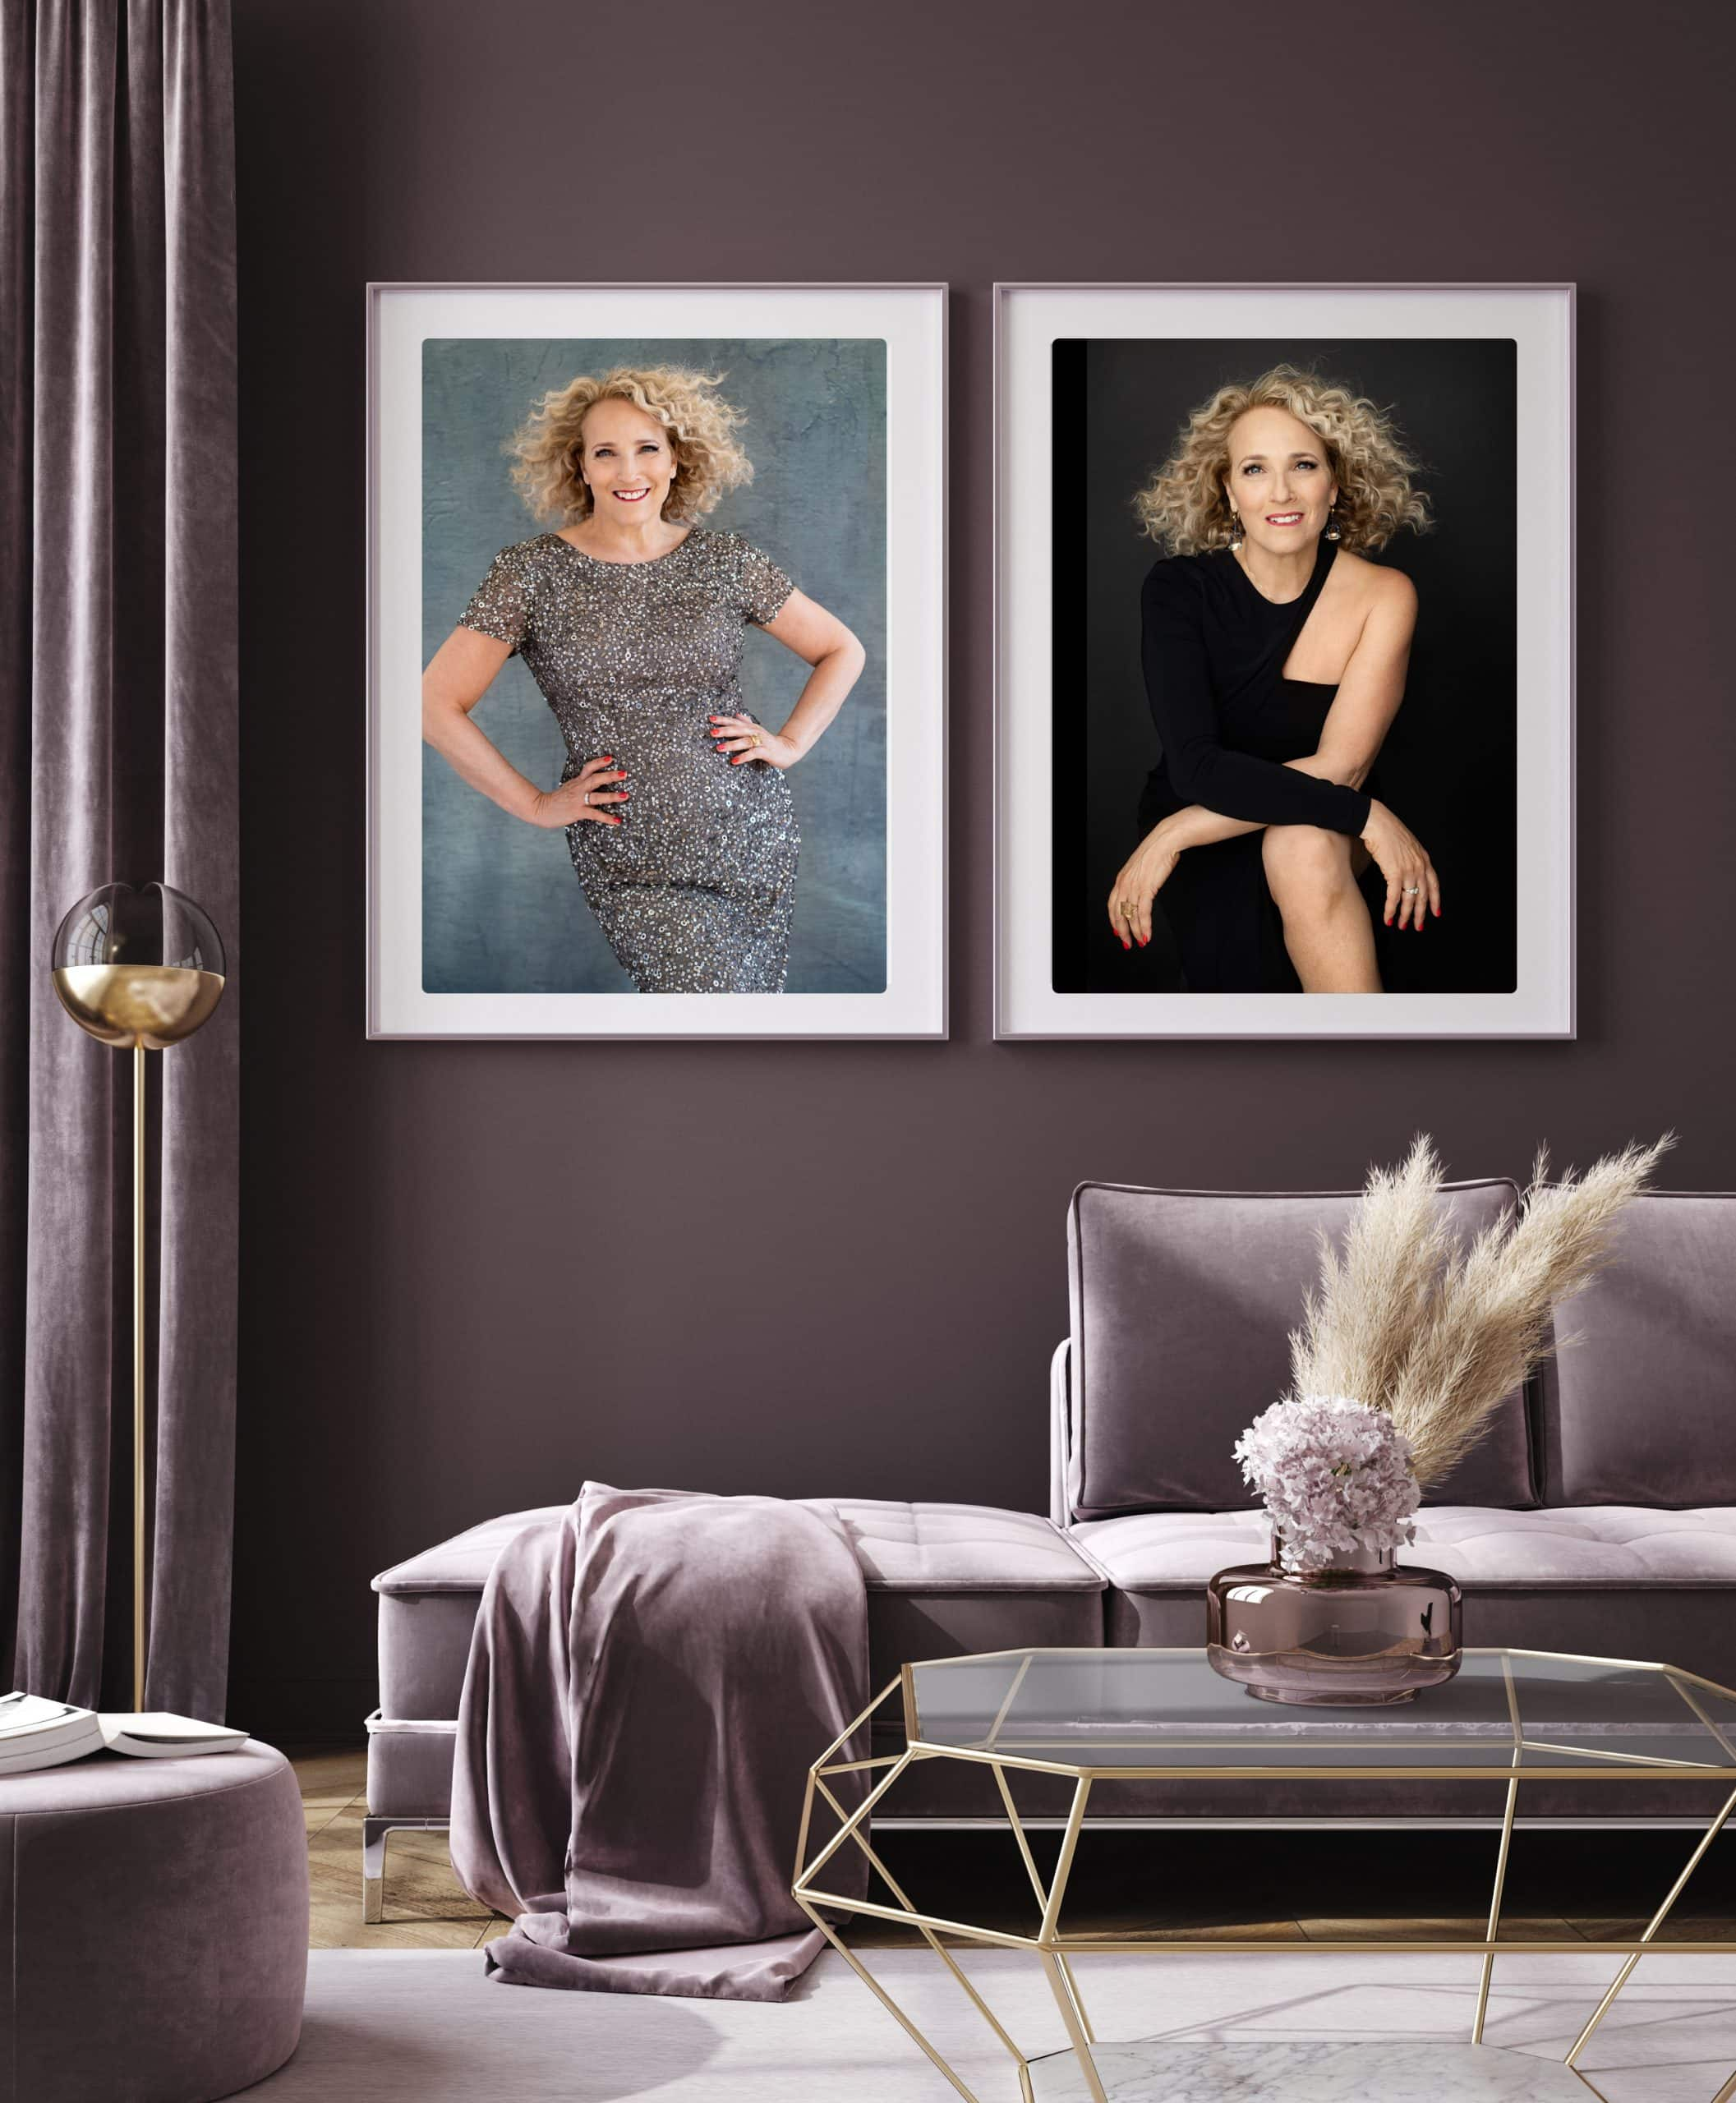 Framed images of woman from the 50 over 50 promotion displayed on a wall